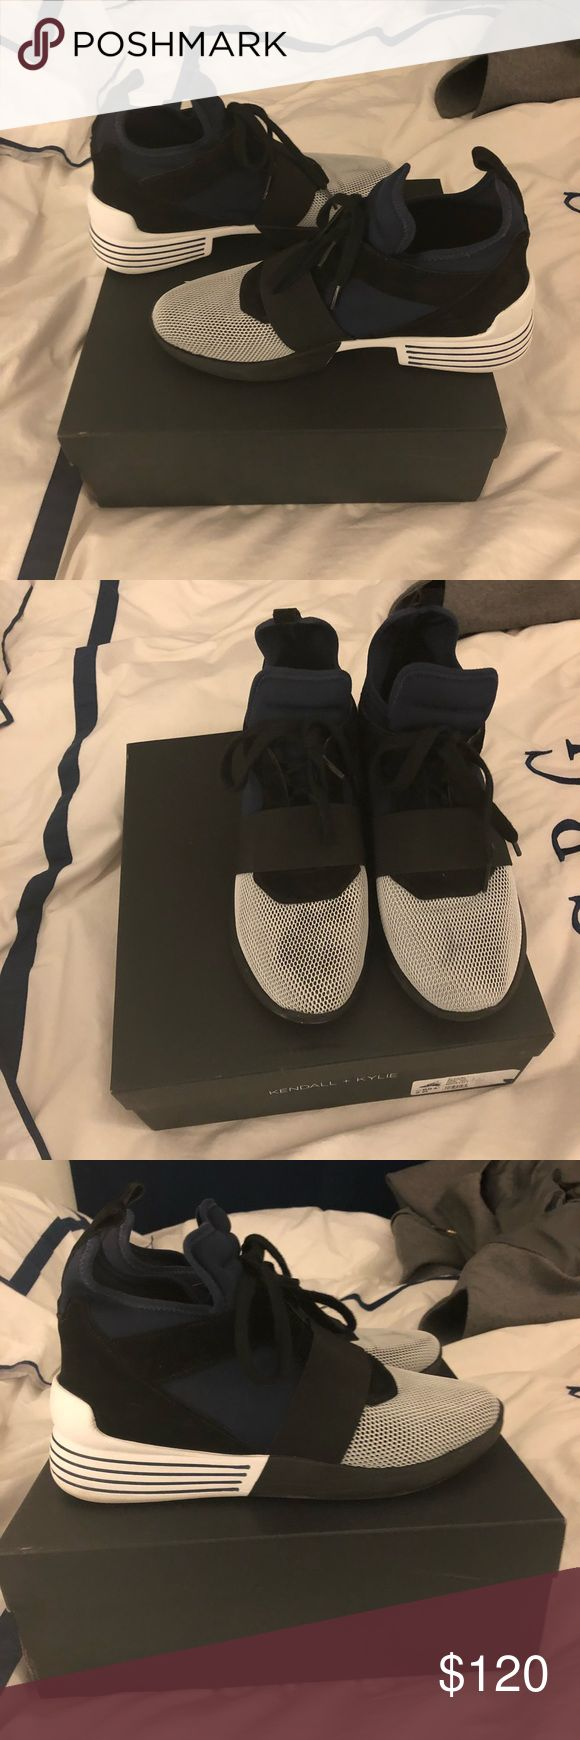 Kendall and Kylie shoes These shoes have been worn once Kendall & Kylie Shoes Sneakers